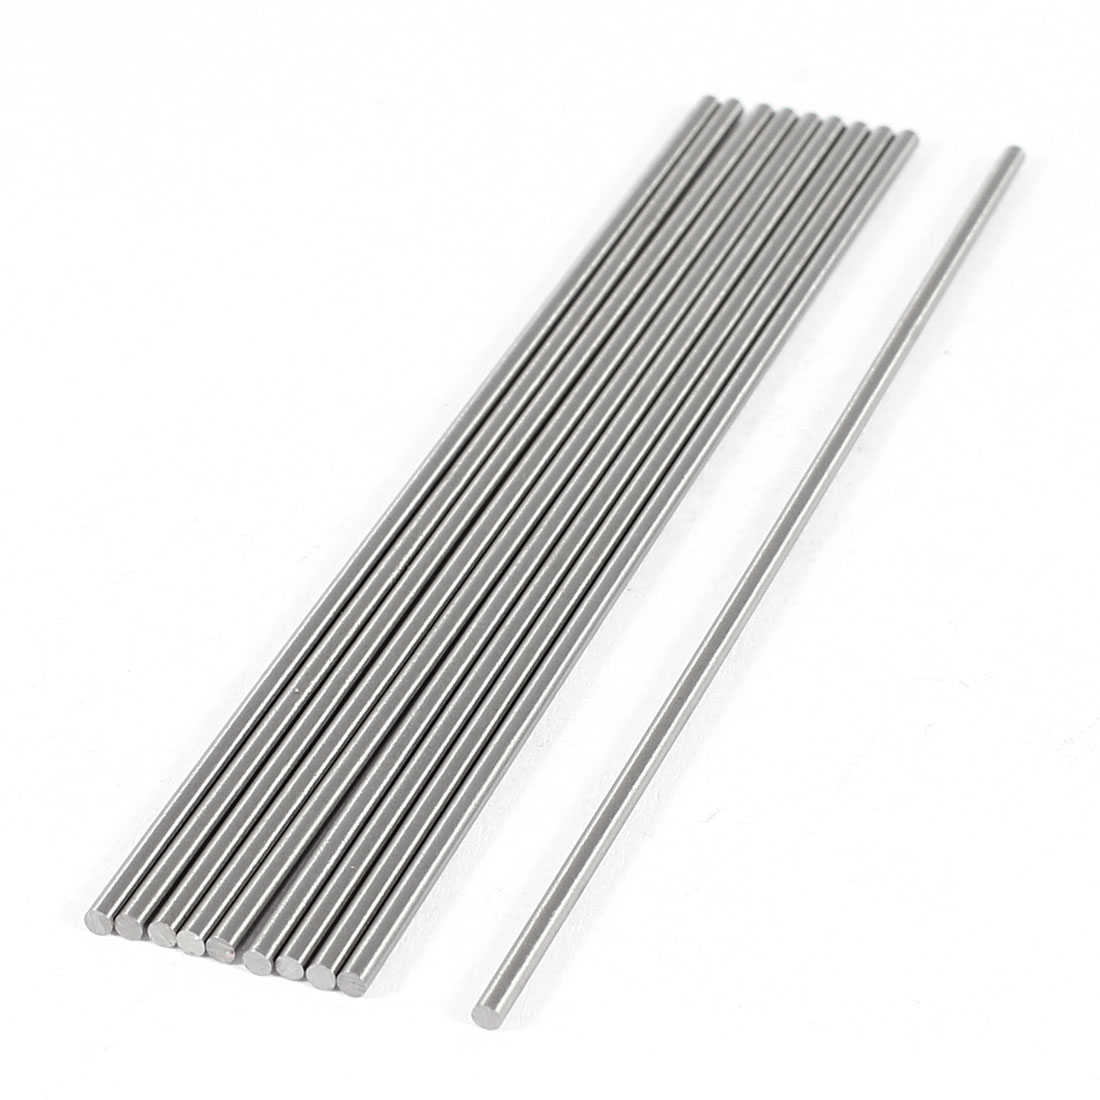 Unique Bargains 10x 1.8mm x 100mm Graving Tool Round Turning Lathe Bars Gray